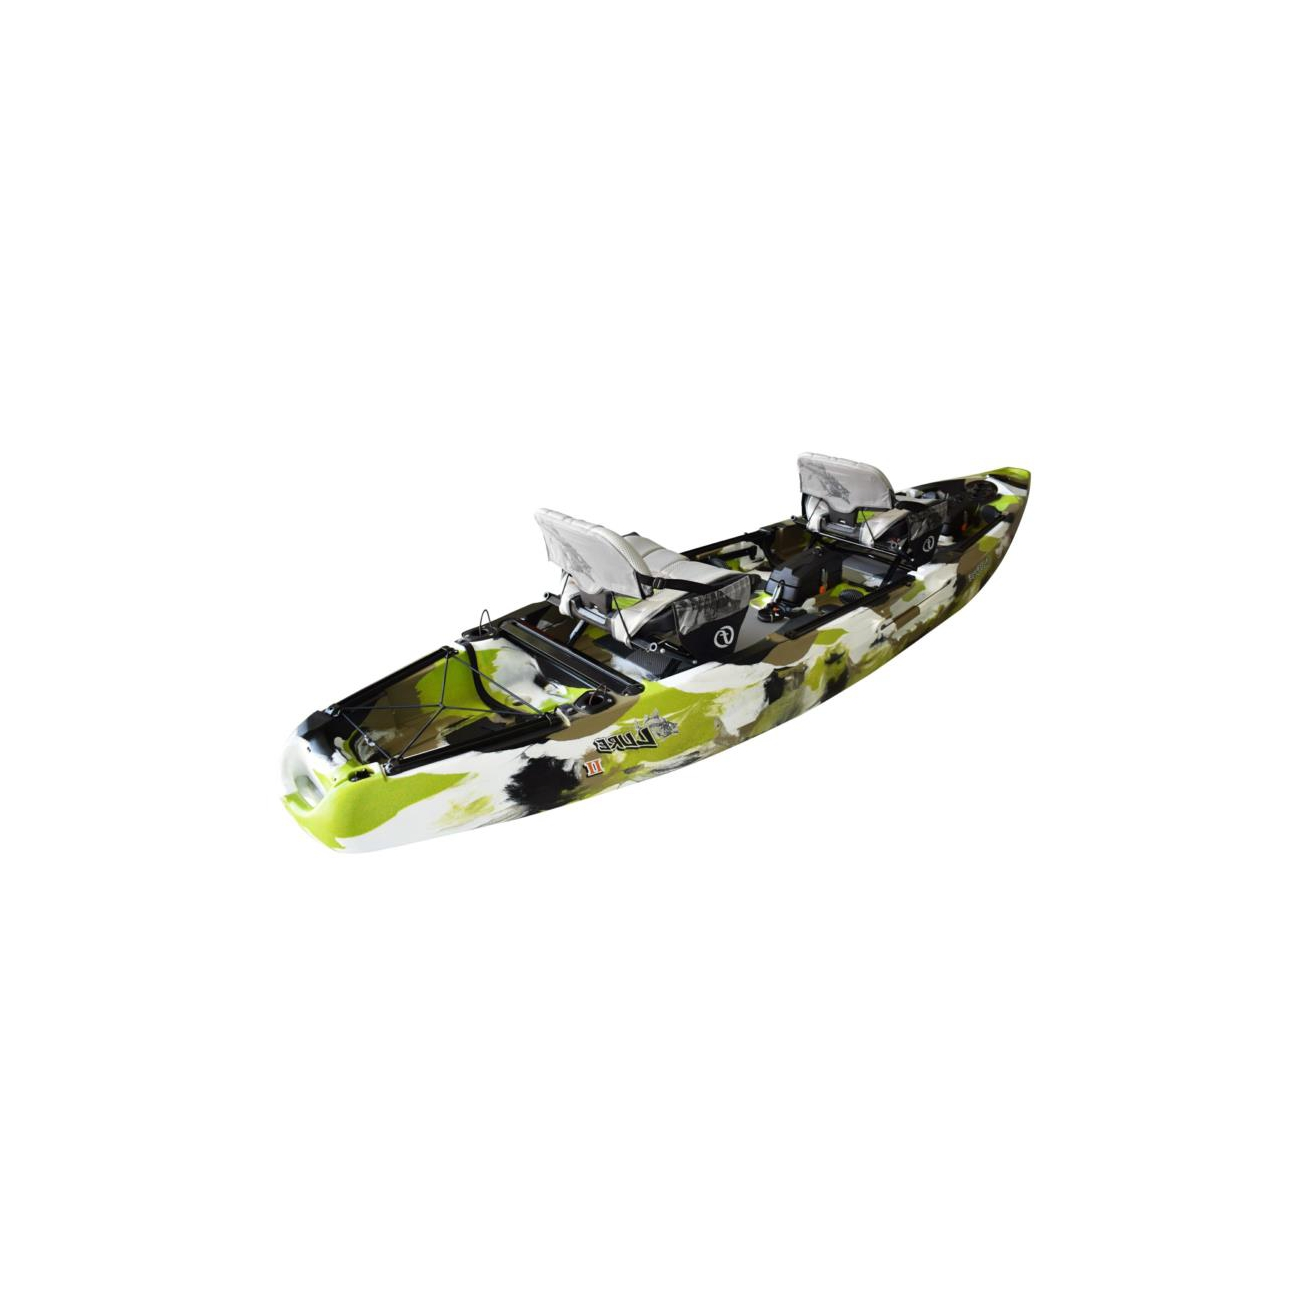 https://feelfreekayak.eu/717-small_default/lure-ii-tandem.jpg